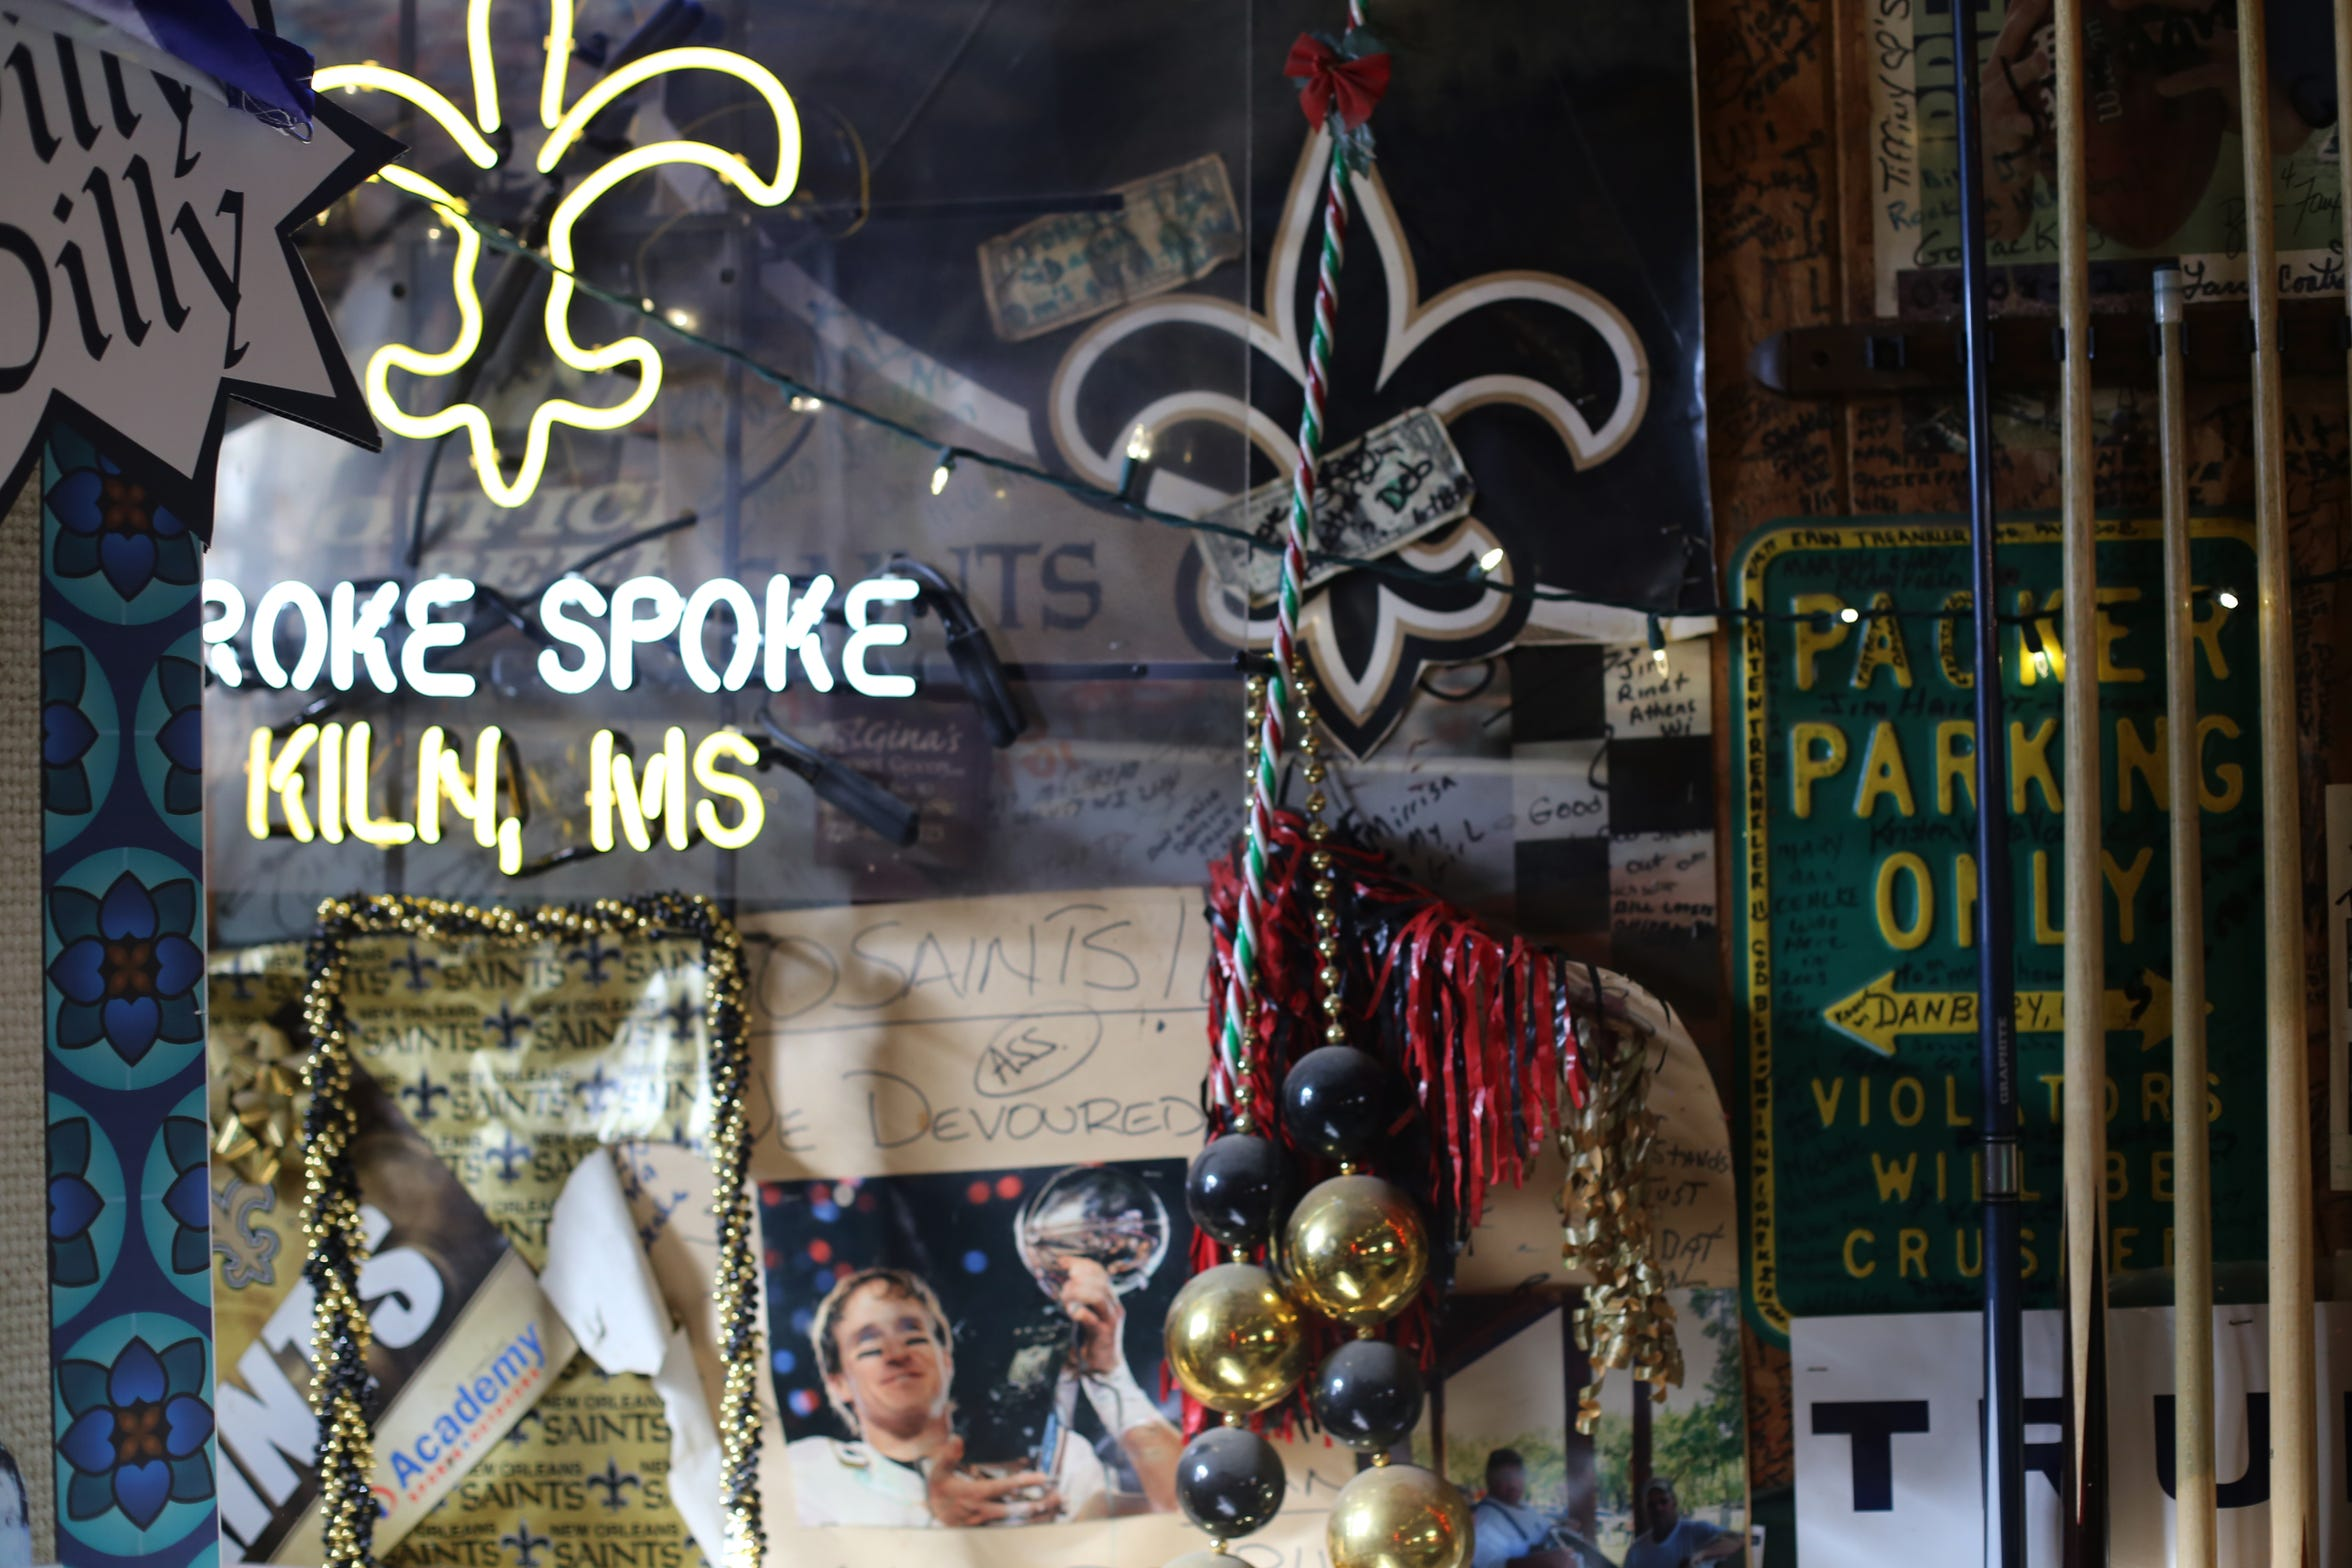 The New Orleans Saints have taken over as crowd favorite at the Broke Spoke bar in Kiln, Mississippi, after hometown football star Brett Favre retired from the game.